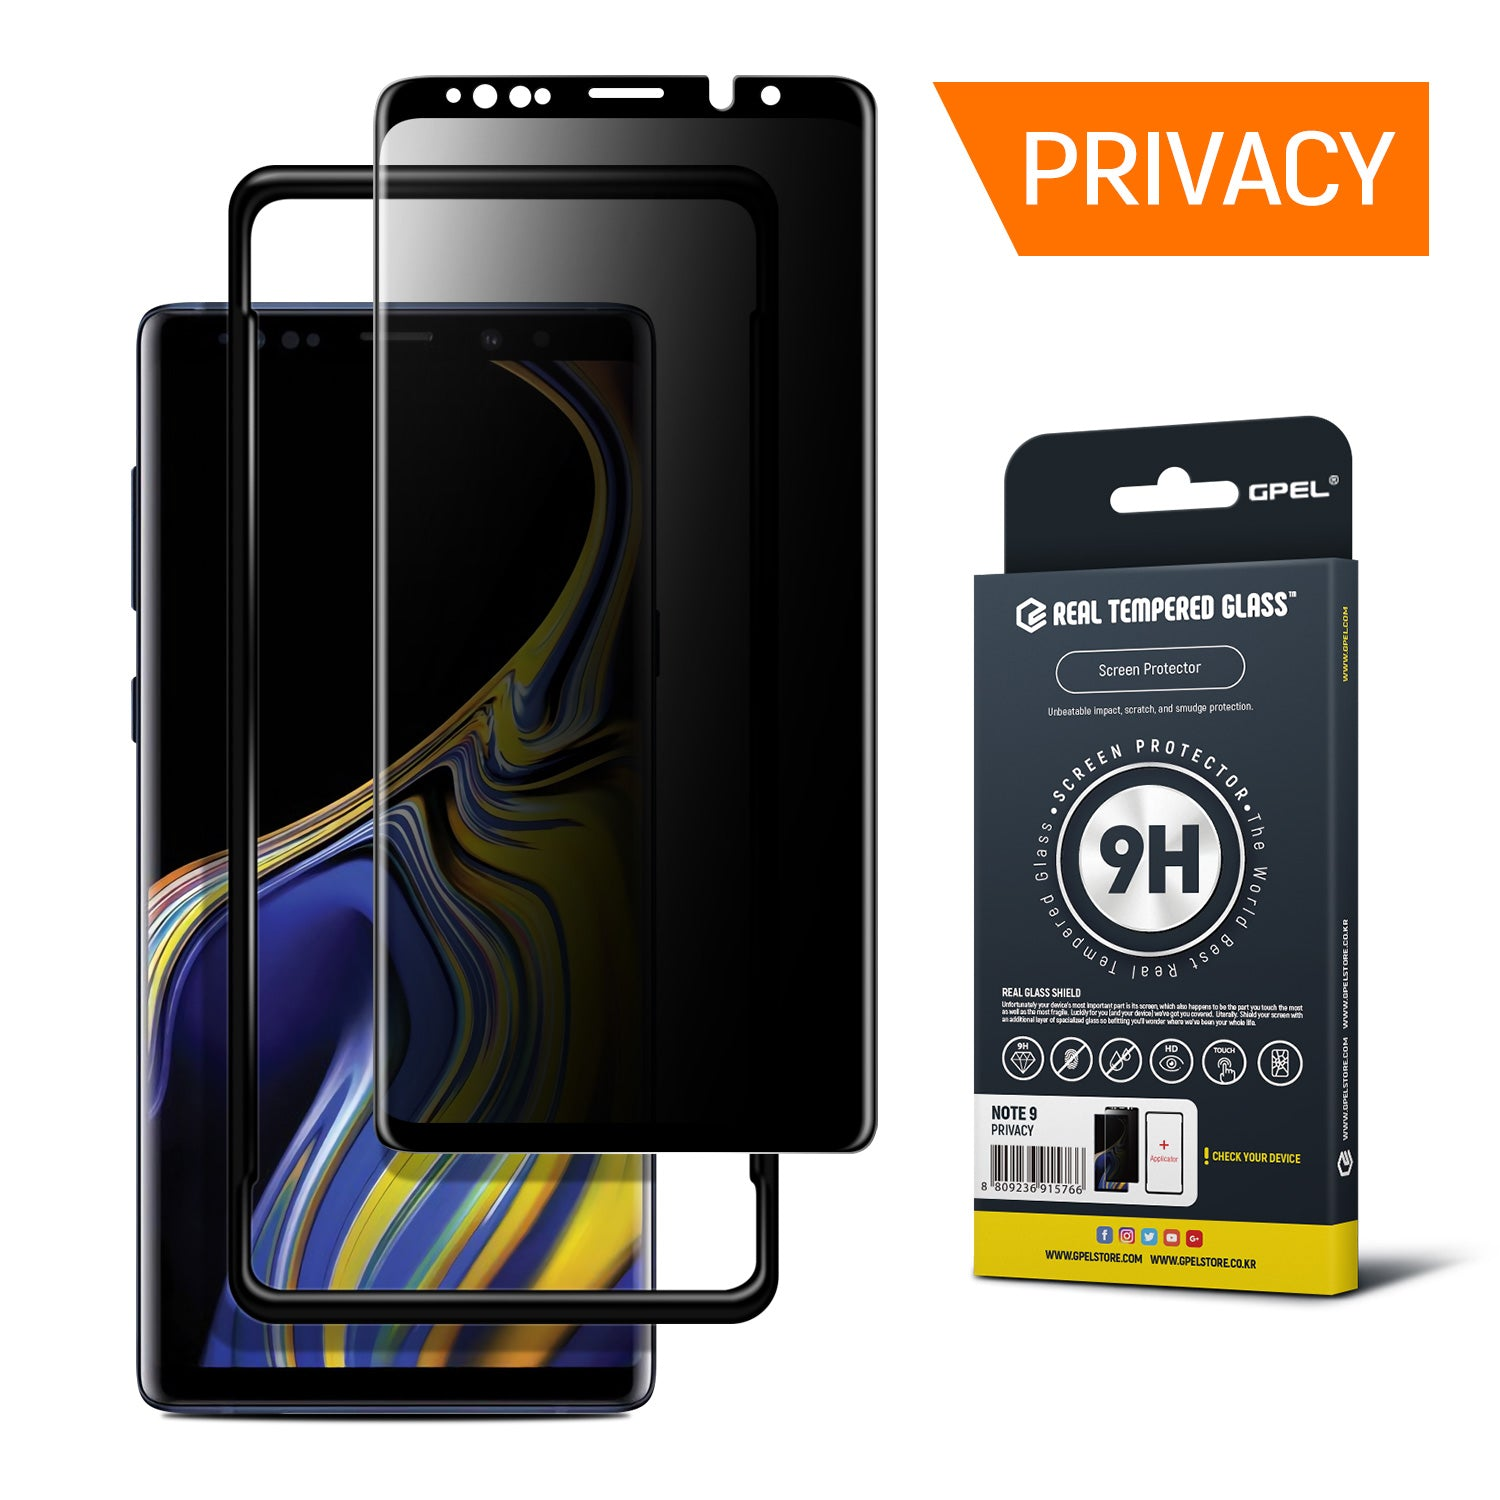 best sneakers 506fa 5701c Galaxy Note 9 Privacy Screen Protector - Real Tempered Glass